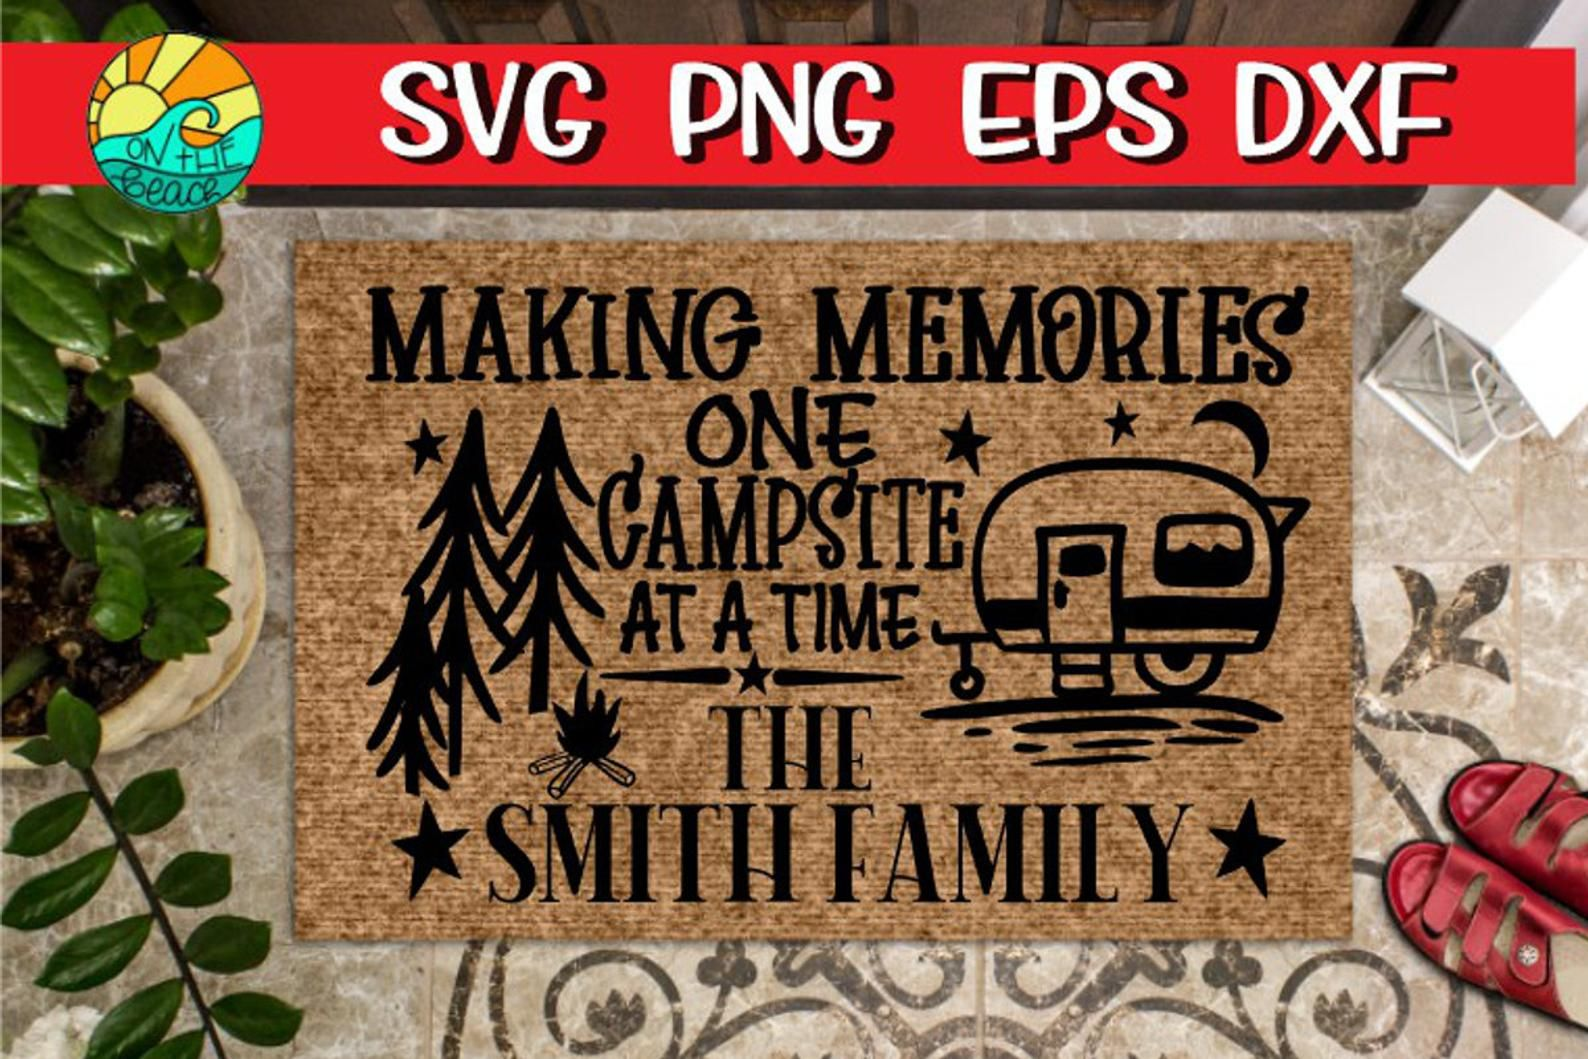 Making Memories FREE FONT One Campsite At A Time Making